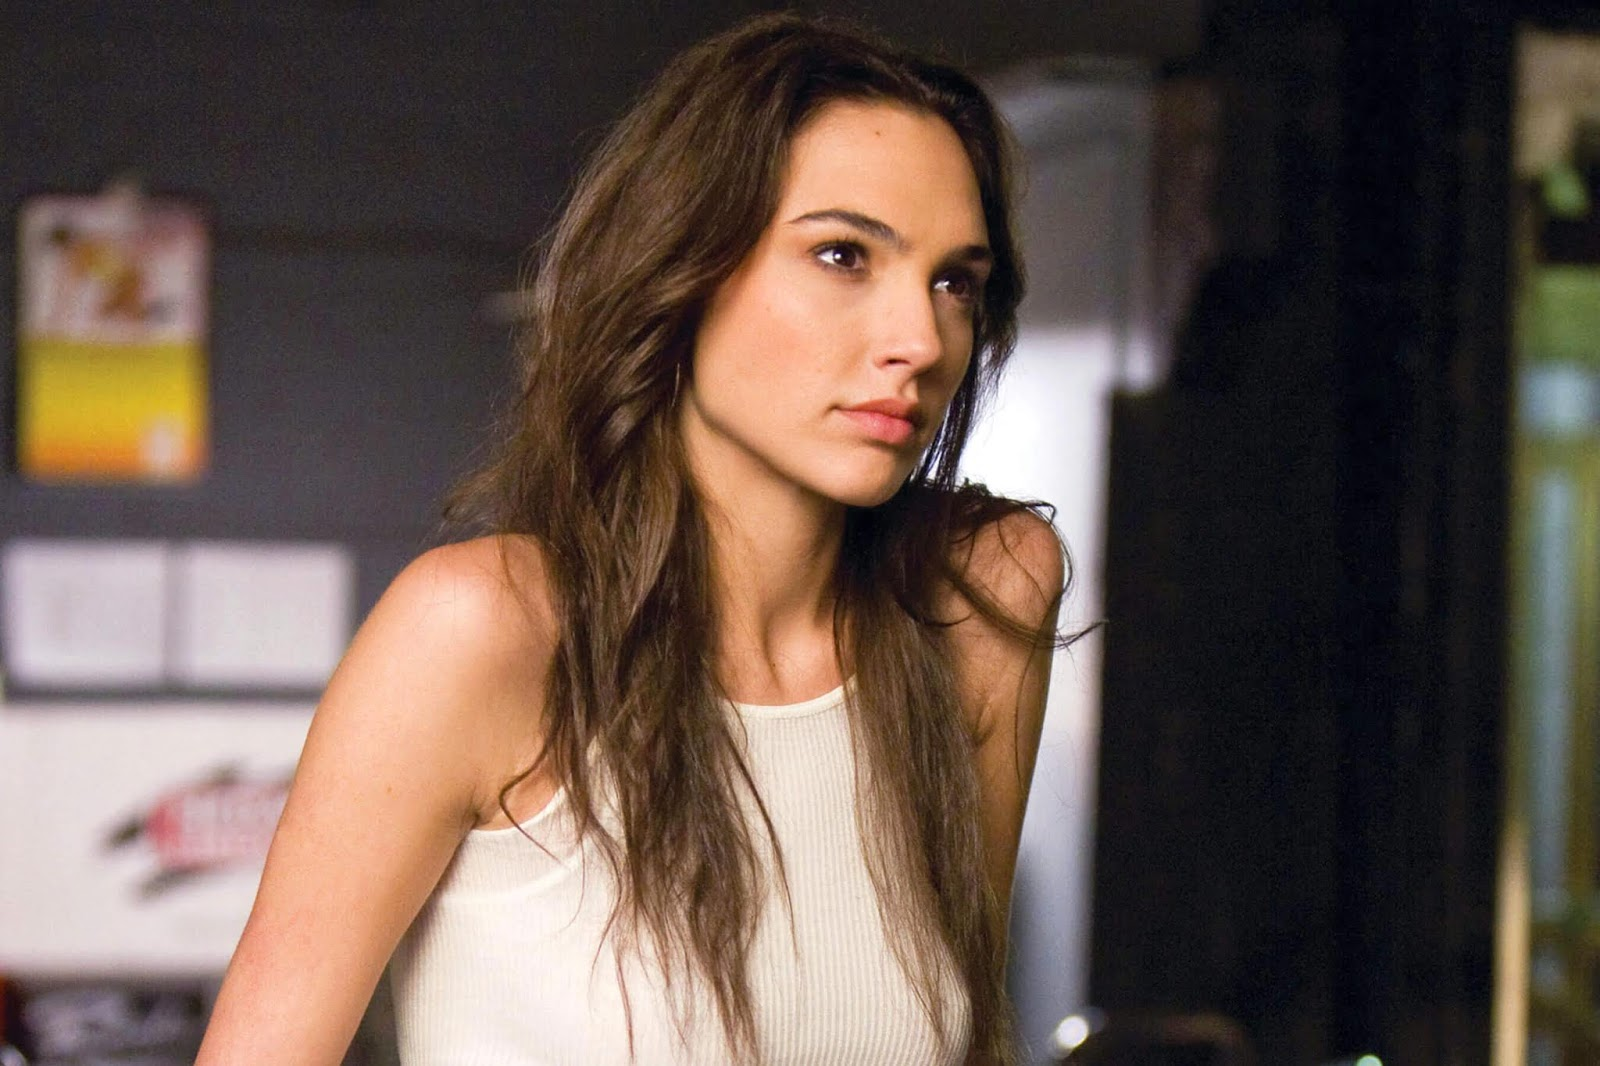 Before she was Wonder Woman, she was Gisele: A tribute to Gal Gadot in Fast & Furious